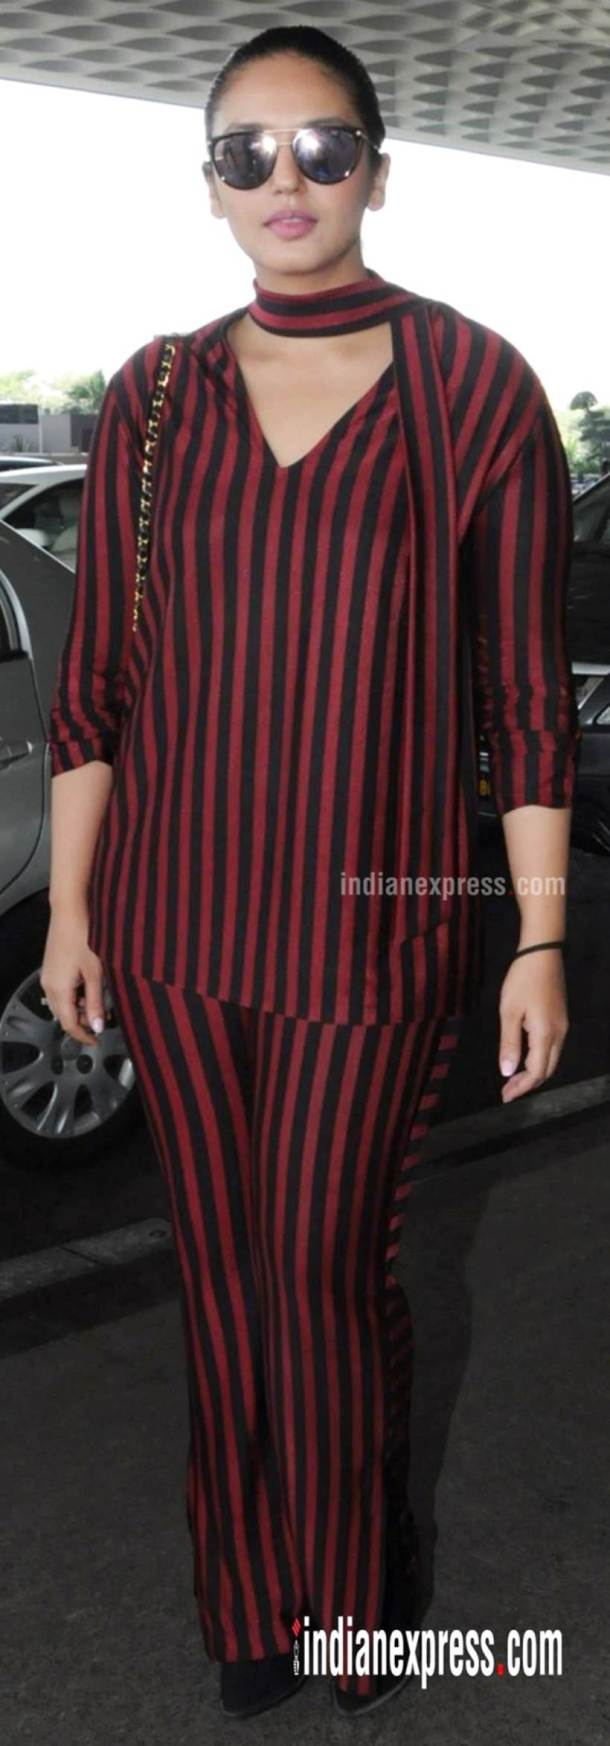 Huma Qureshi, Bizarre outfits 2017, Fashion Misses 2017, Worst Outfits 2017